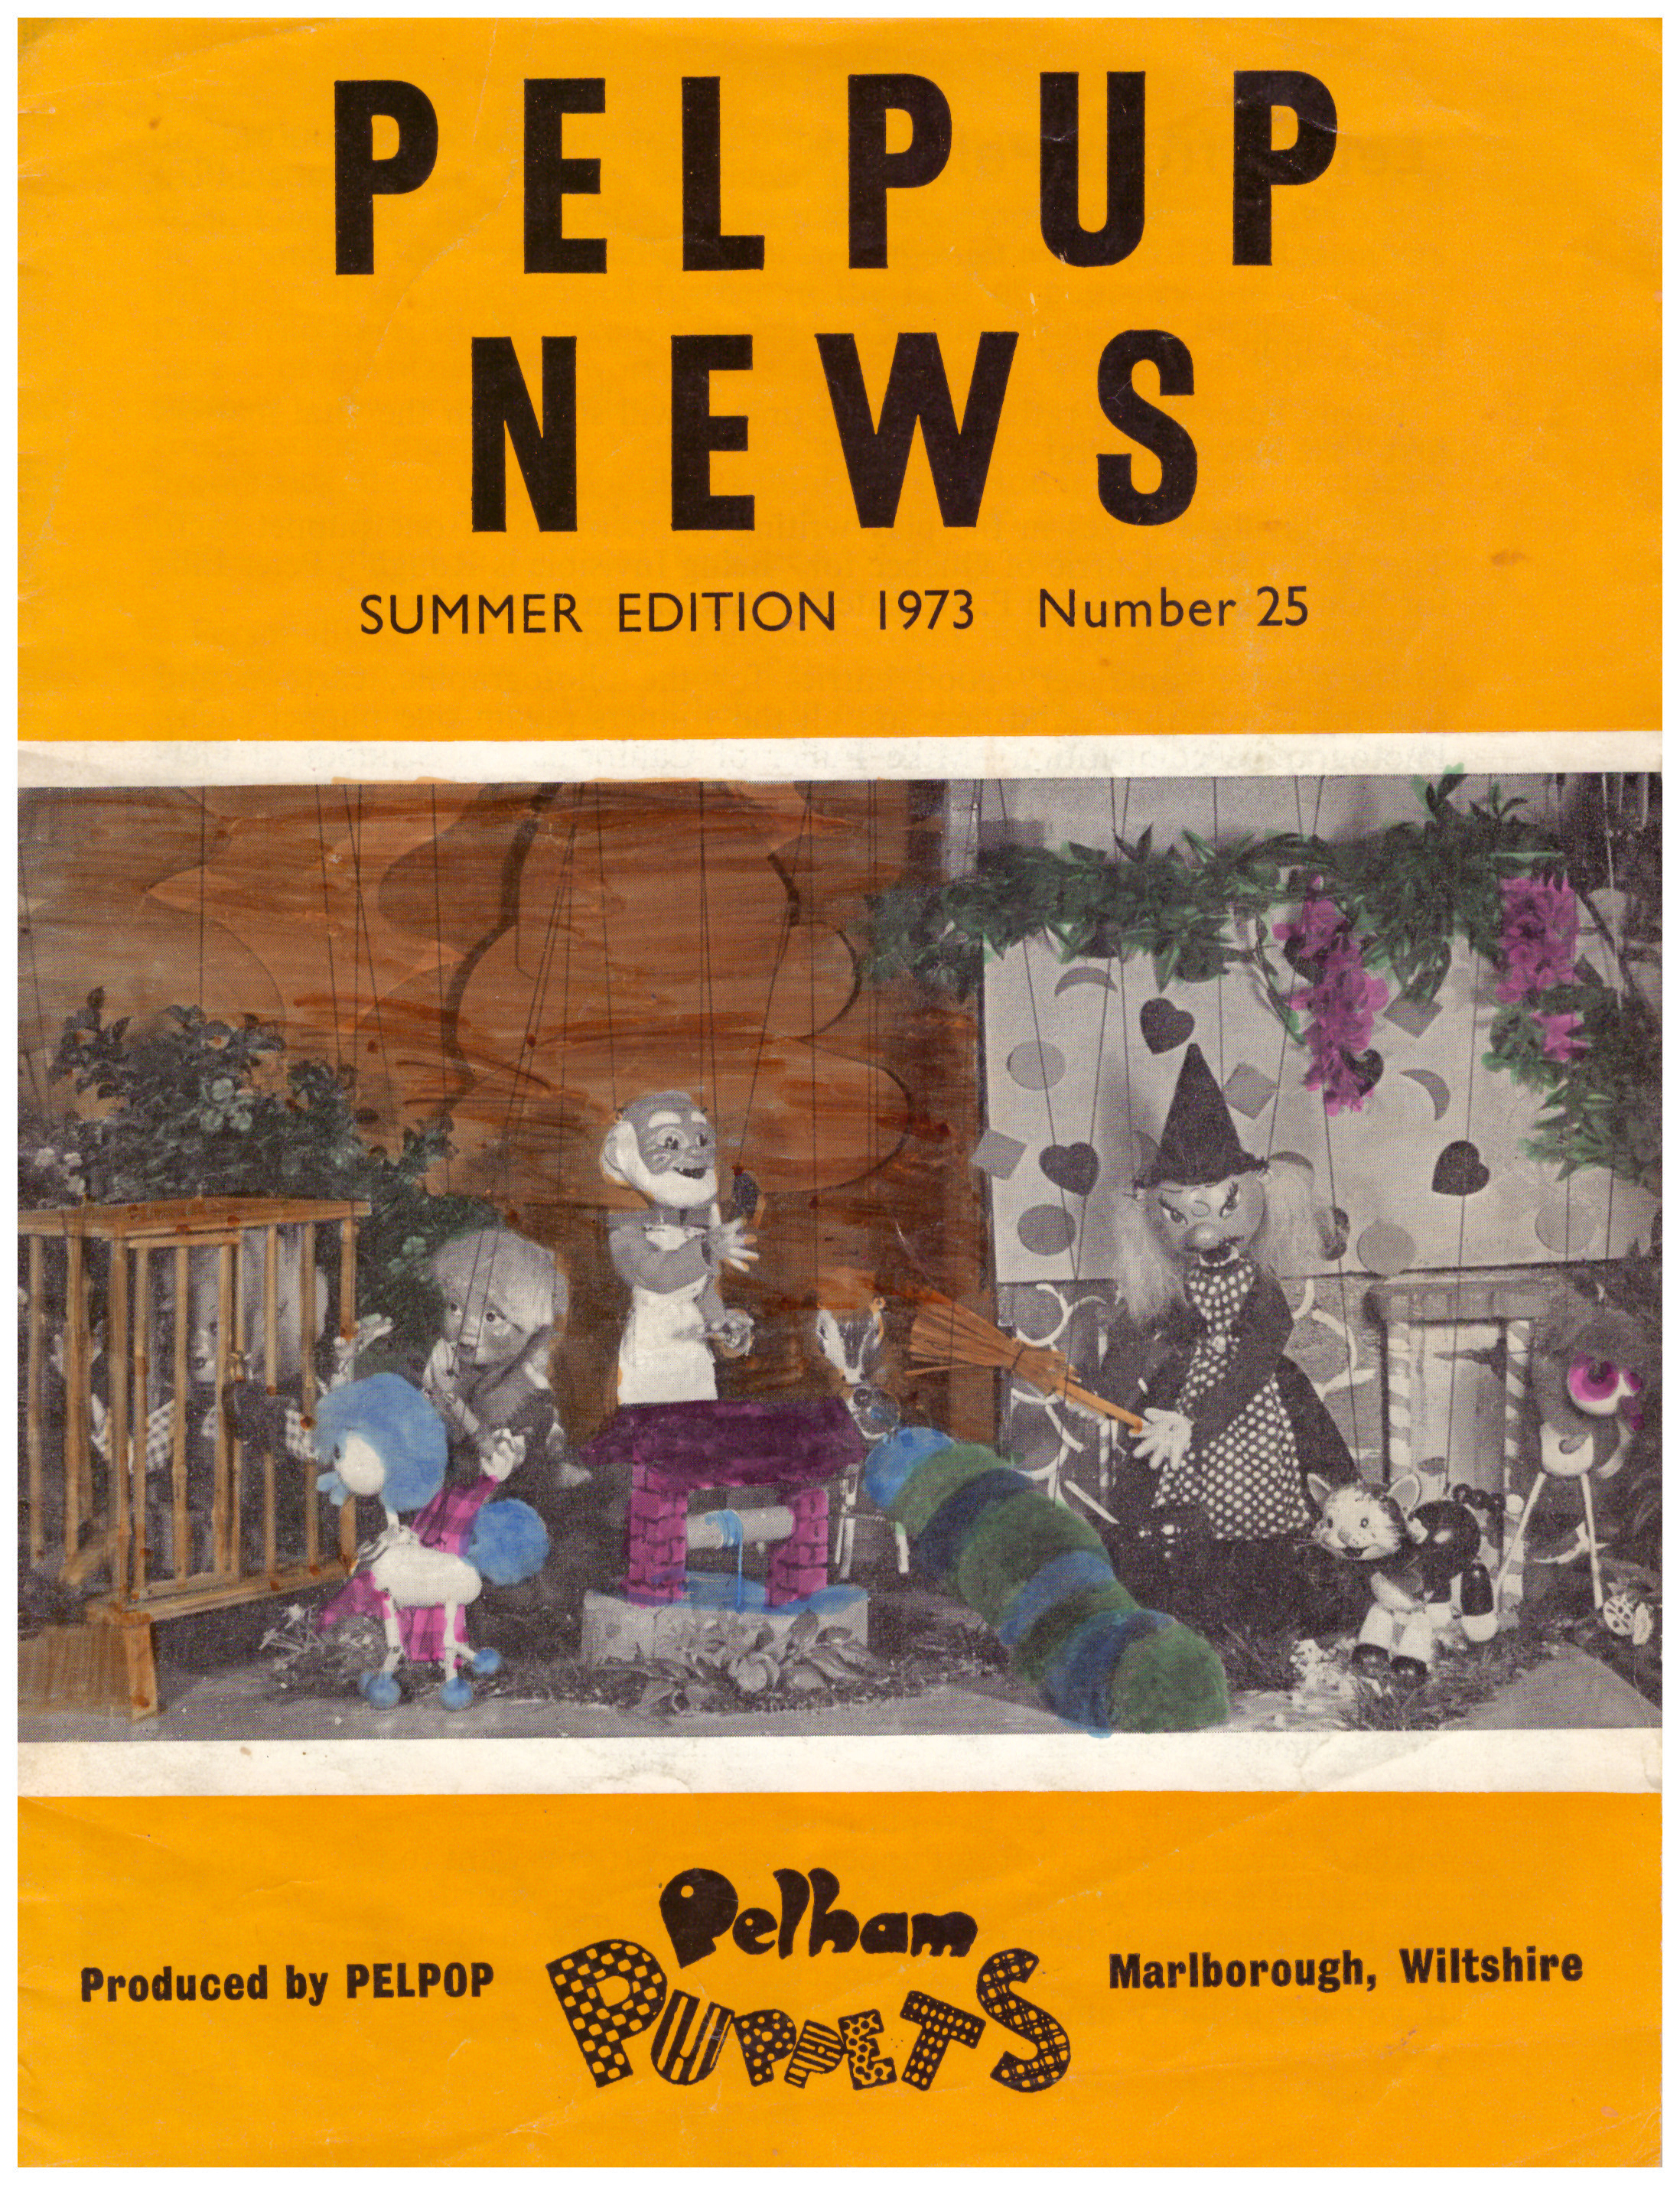 Summer Edition 1973 Number 25